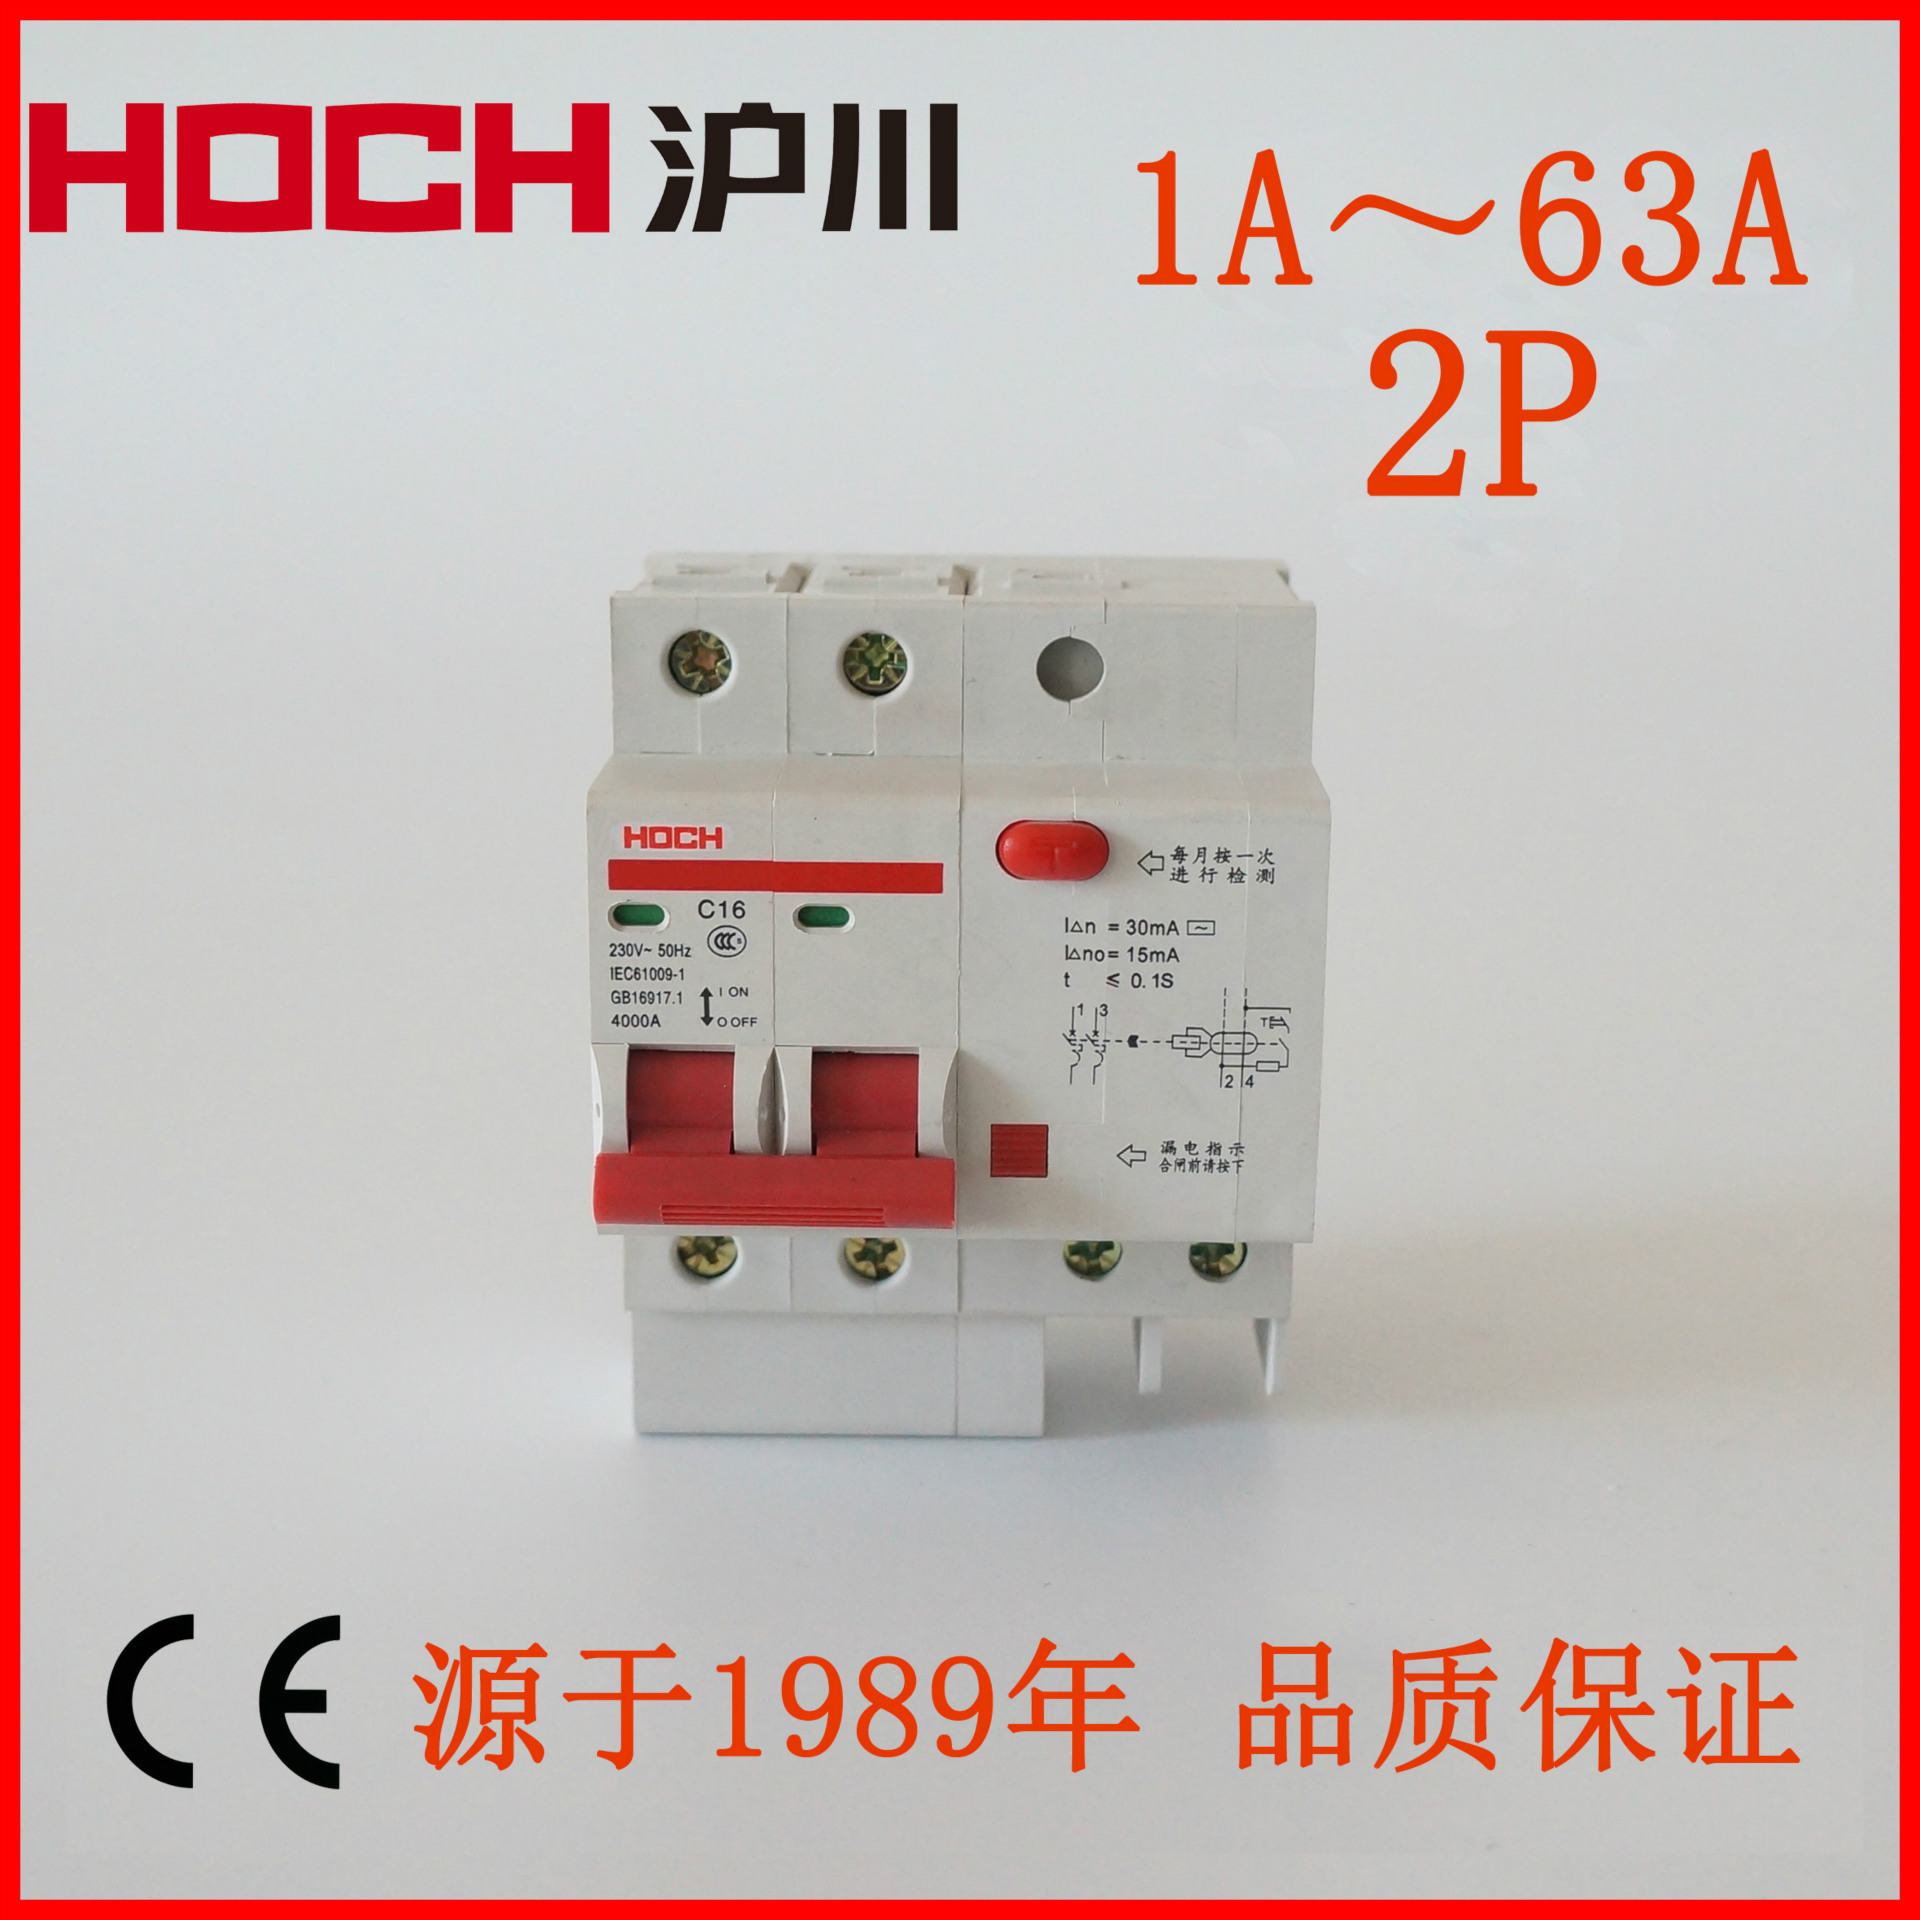 HOCH Shanghai-micro small leakage protection circuit breaker air switch DZ47LE 2P empty open two dio